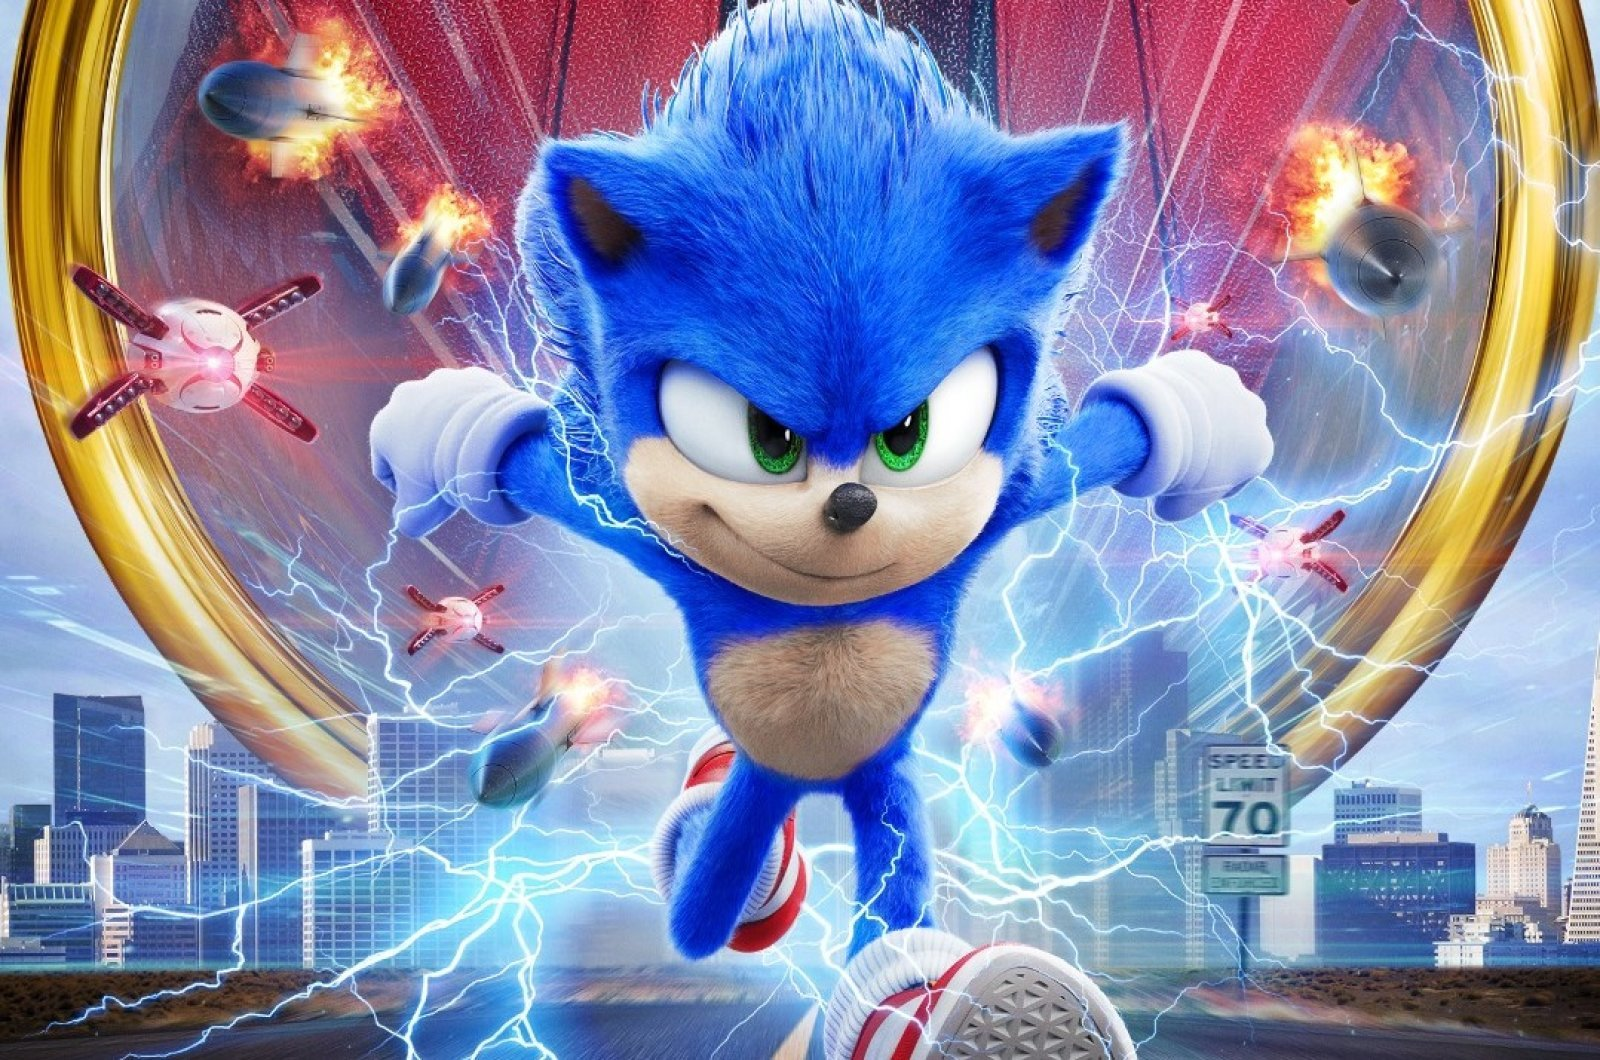 Sonic The Hedgehog Sequel Announced For April 2022 Paramount Tentpoles Delayed To 2021 The Cultured Nerd